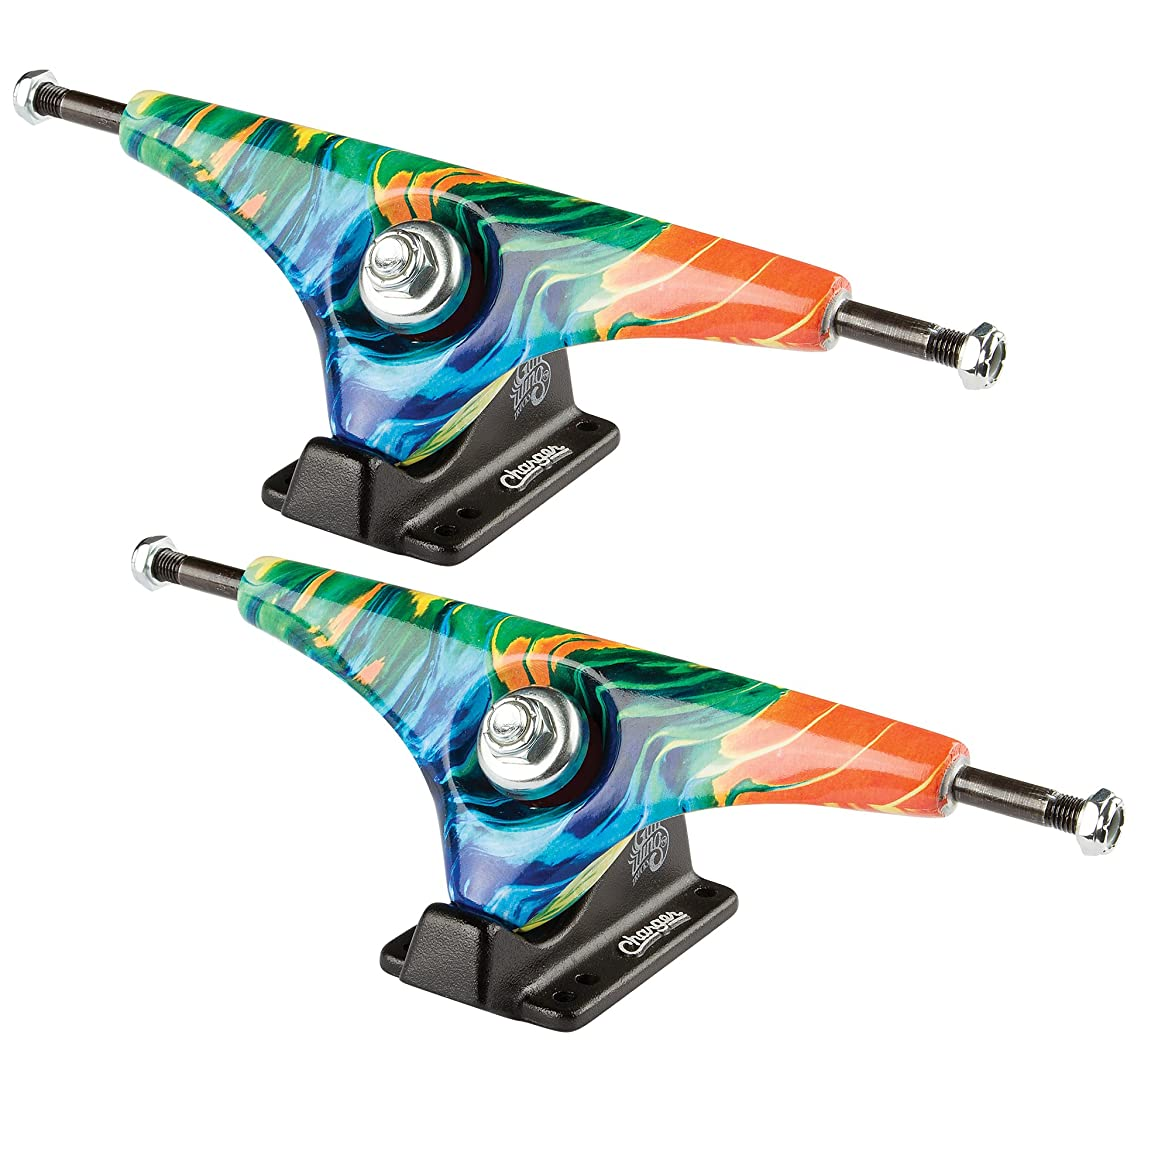 Gullwing Charger Longboard Skateboard Trucks Set of 2